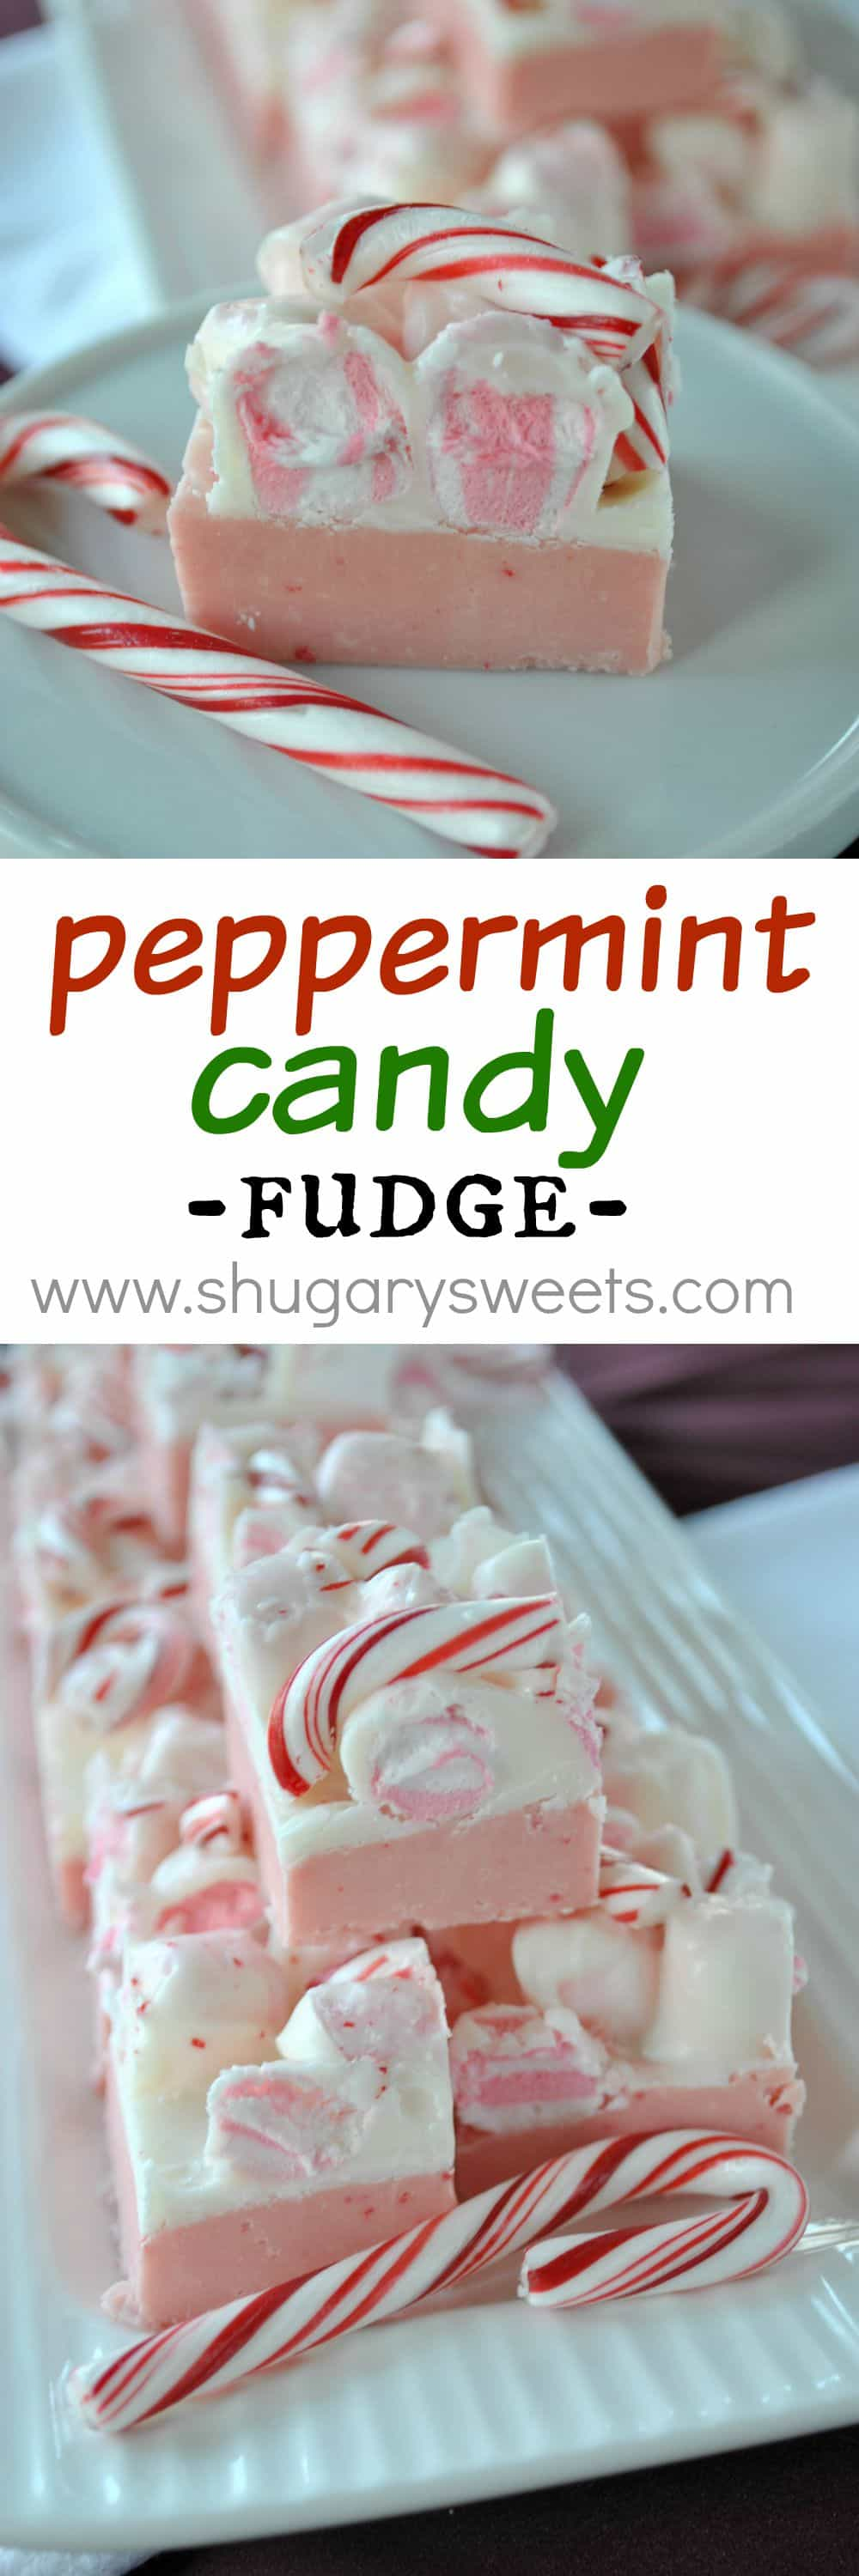 Peppermint Fudge : sweet layers of fudge with peppermint marshmallow ...